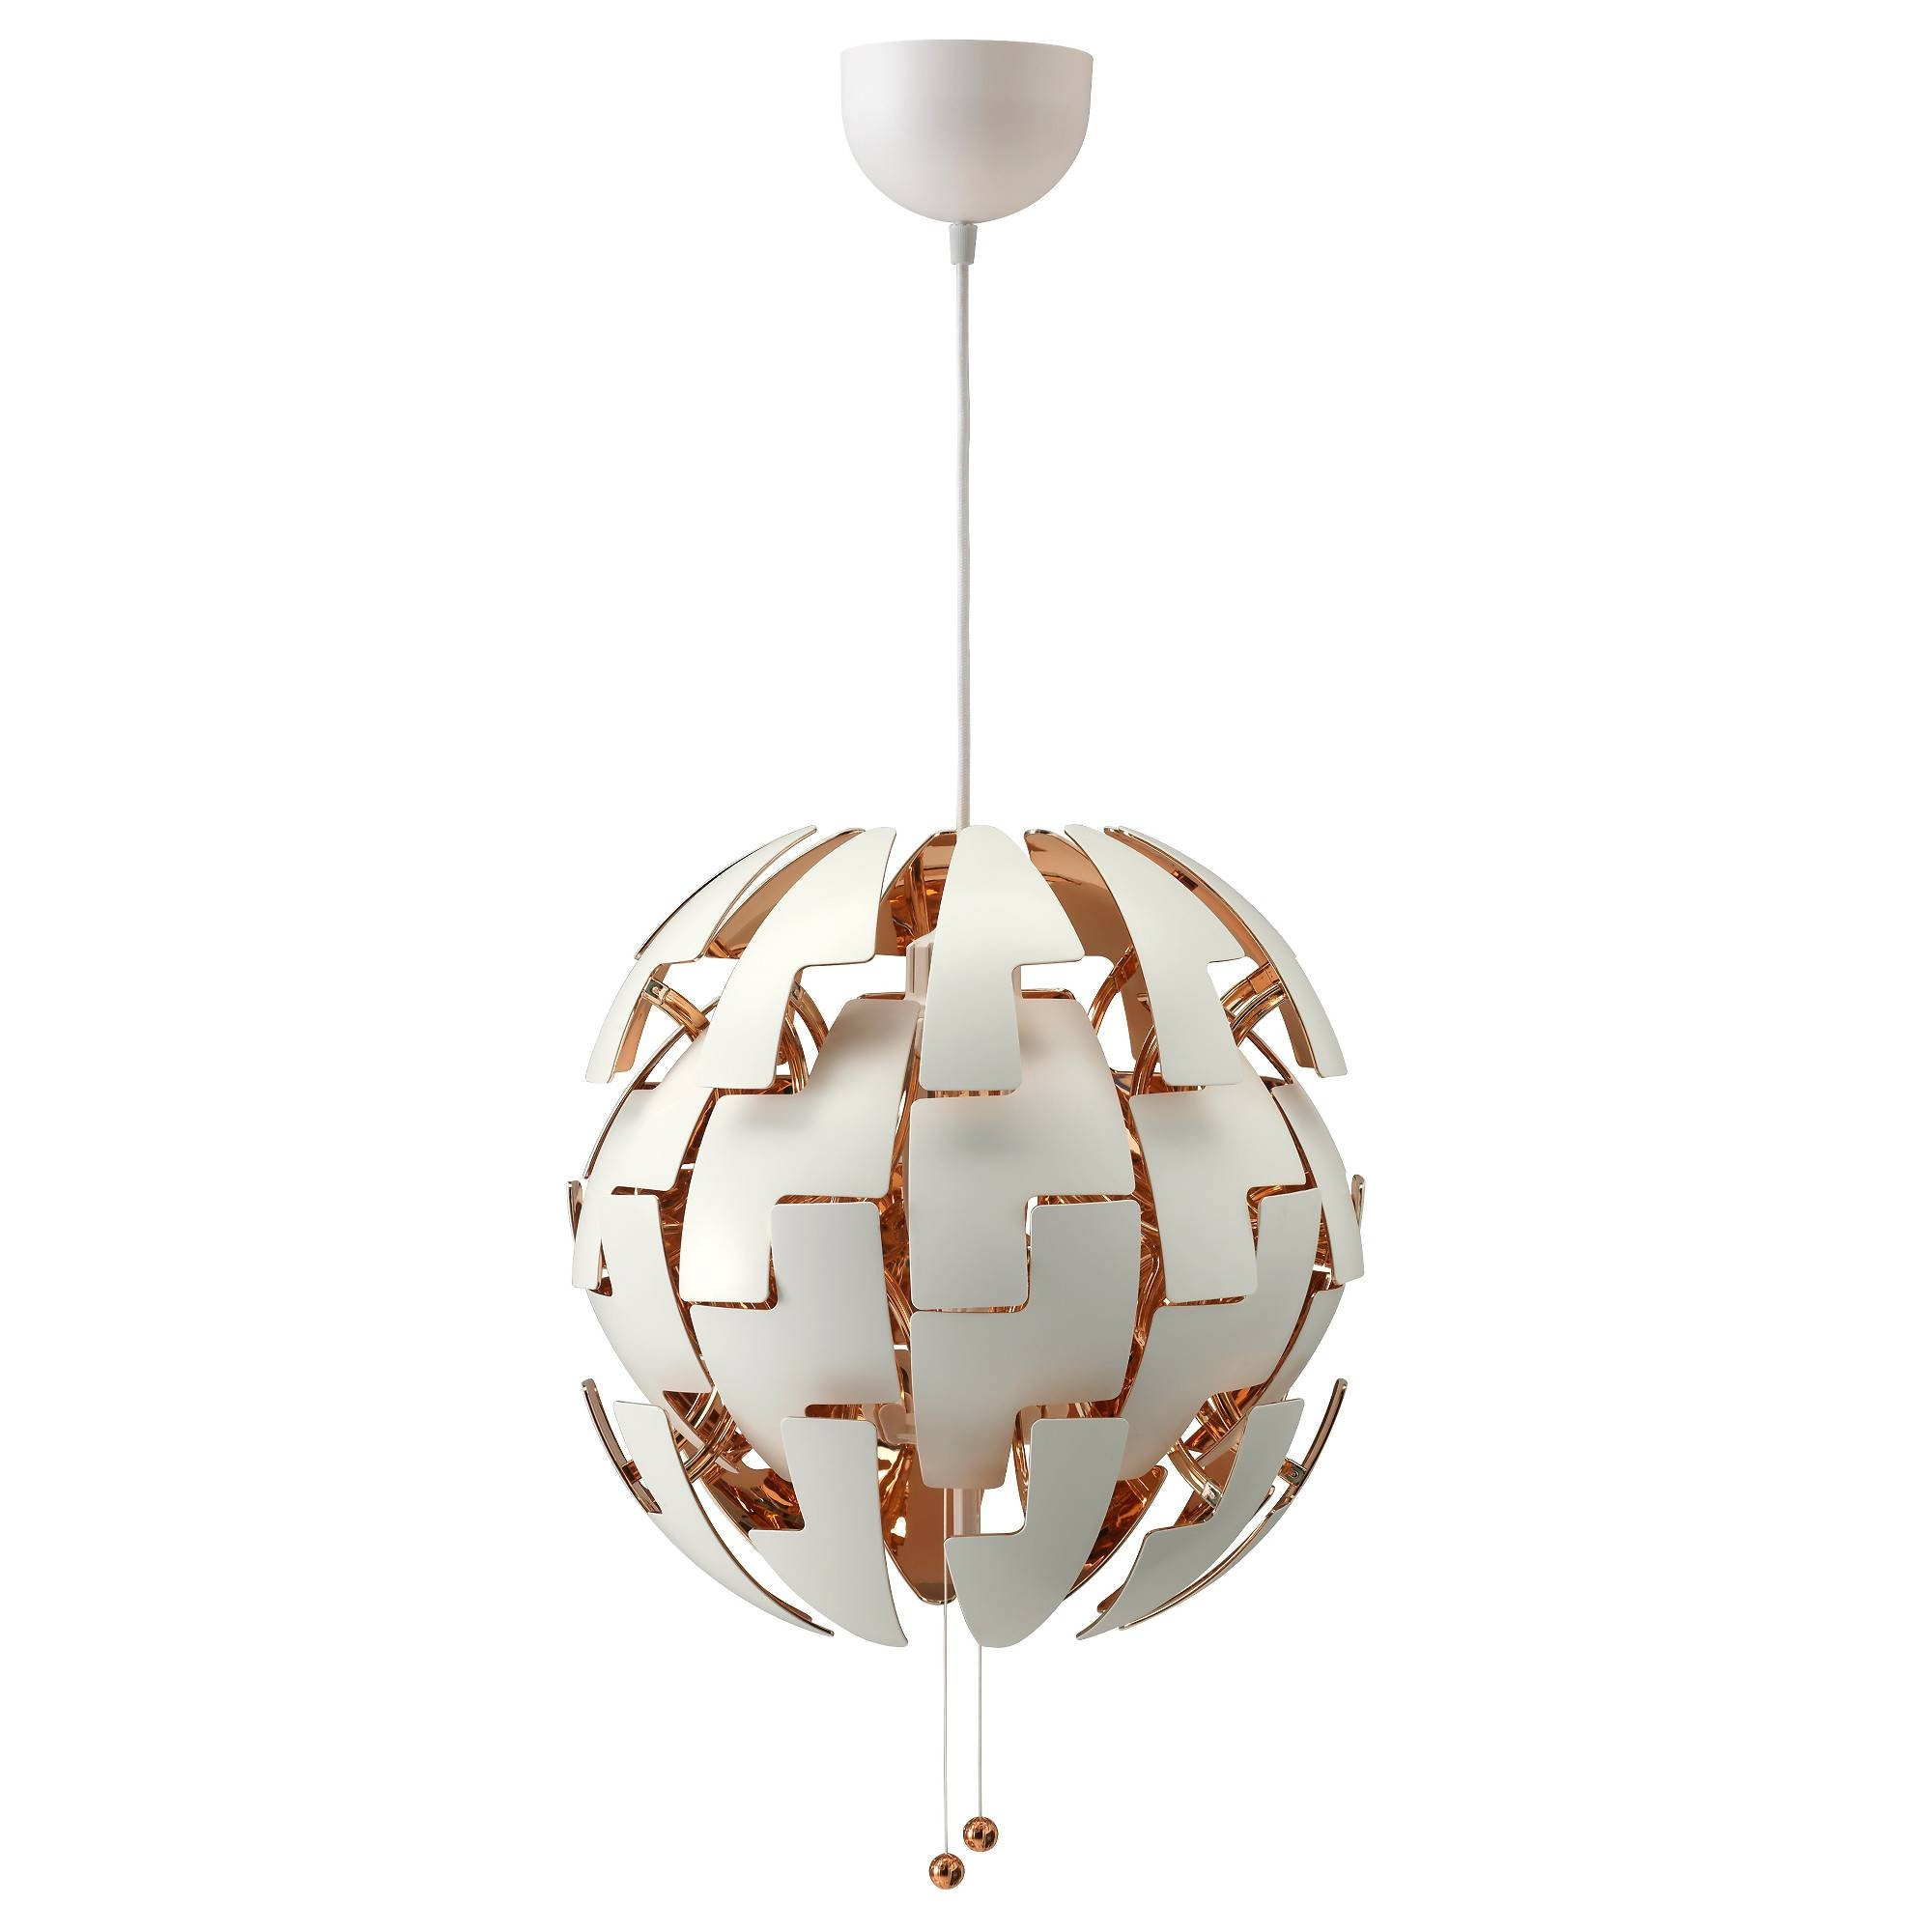 Ikea Ps 2014 Pendant Lamp – White/copper Color – Ikea Throughout Ikea Globe Lights (View 7 of 15)